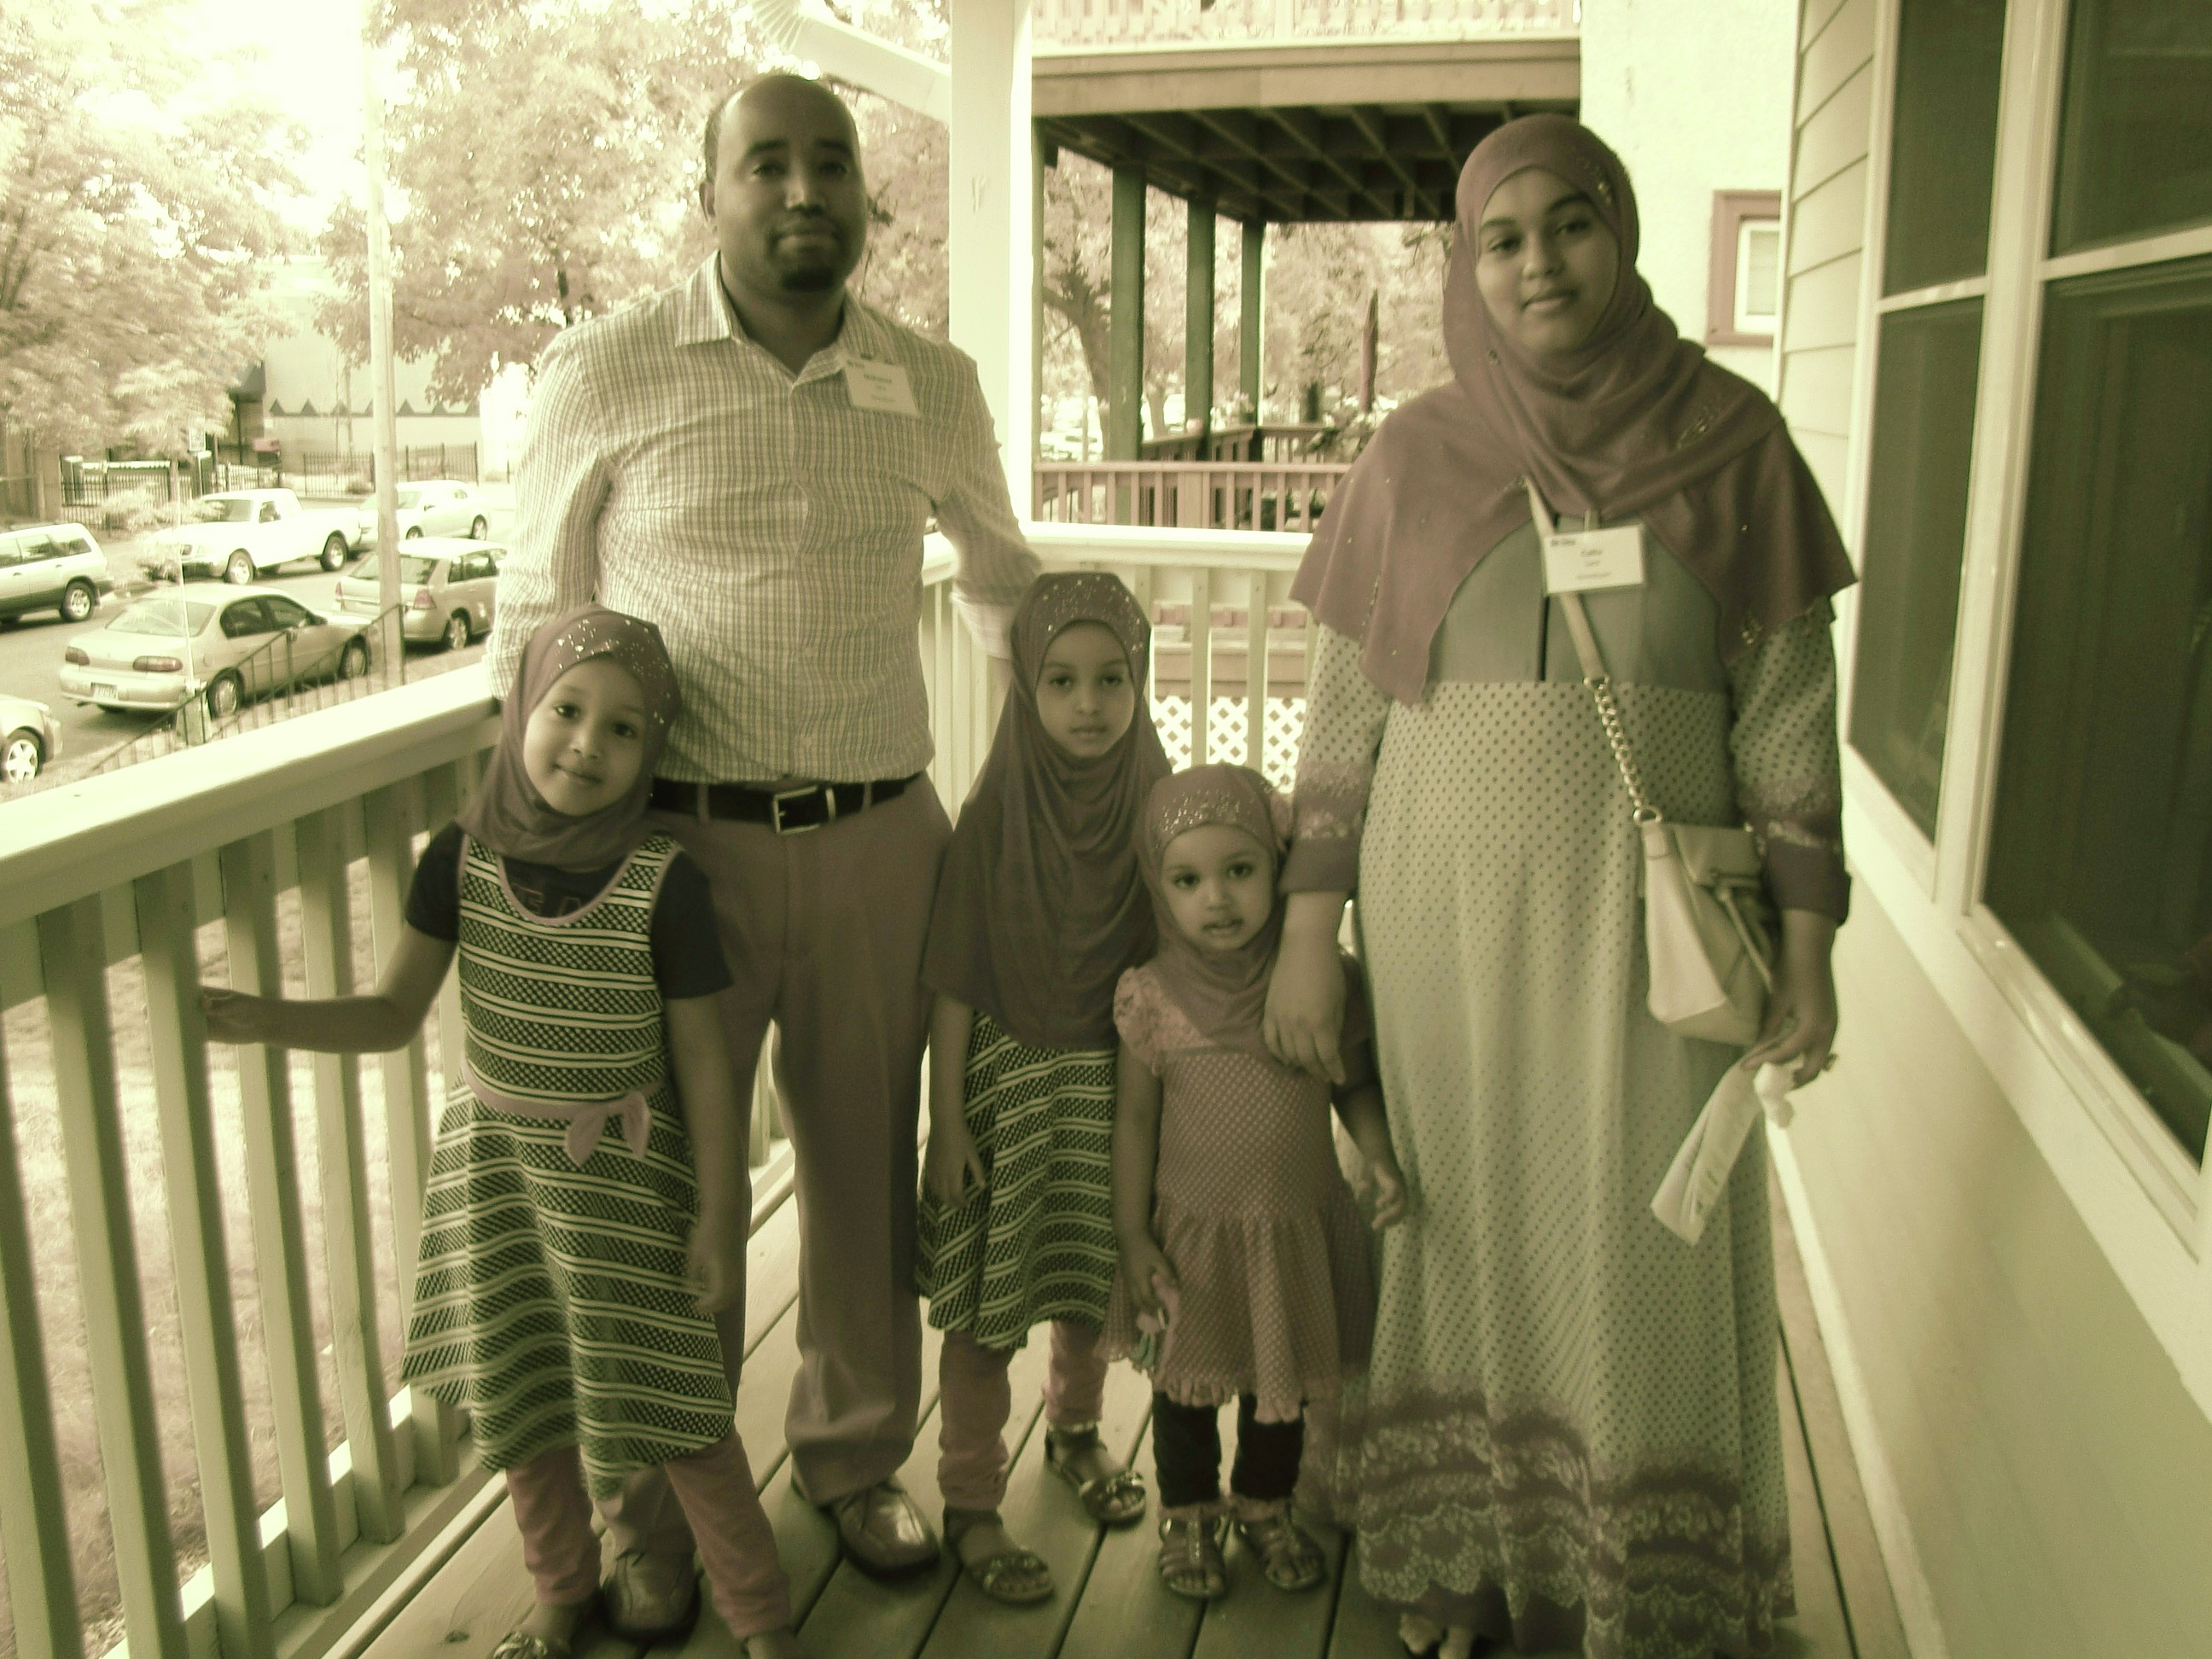 Mohamed and Caltu with their family